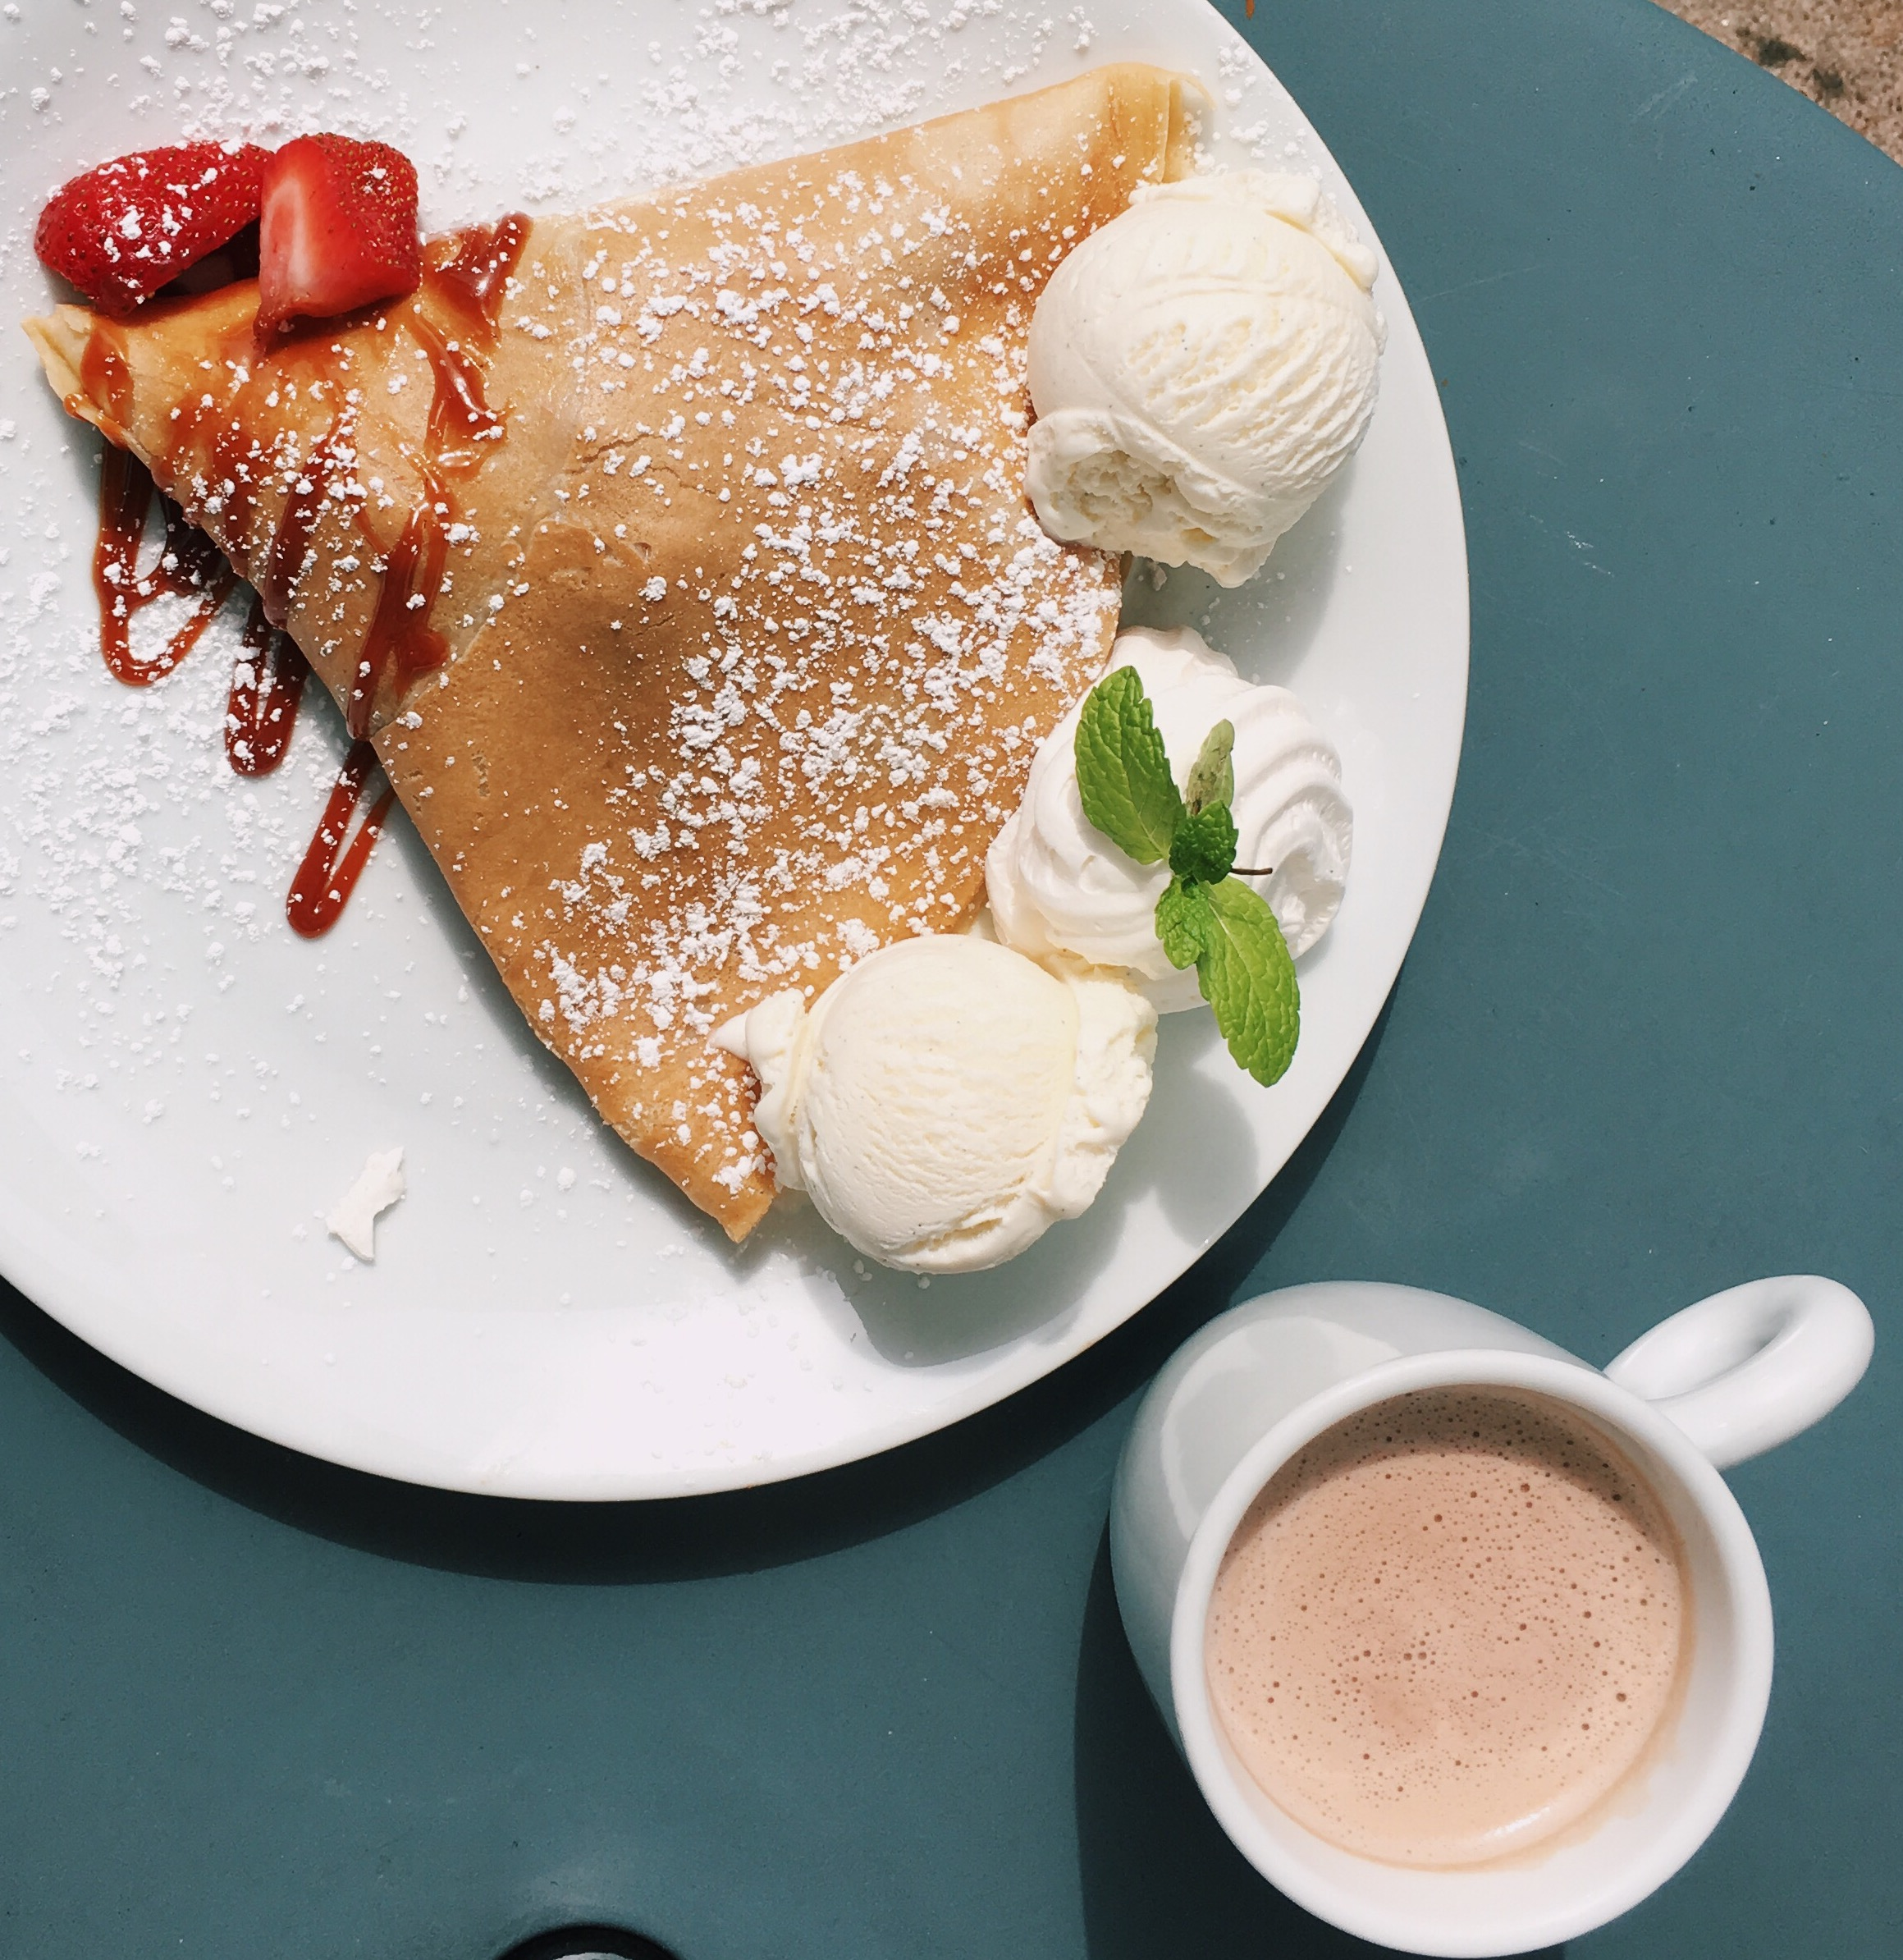 Best Breakfast Crepes in houston sweet paris french restaurant